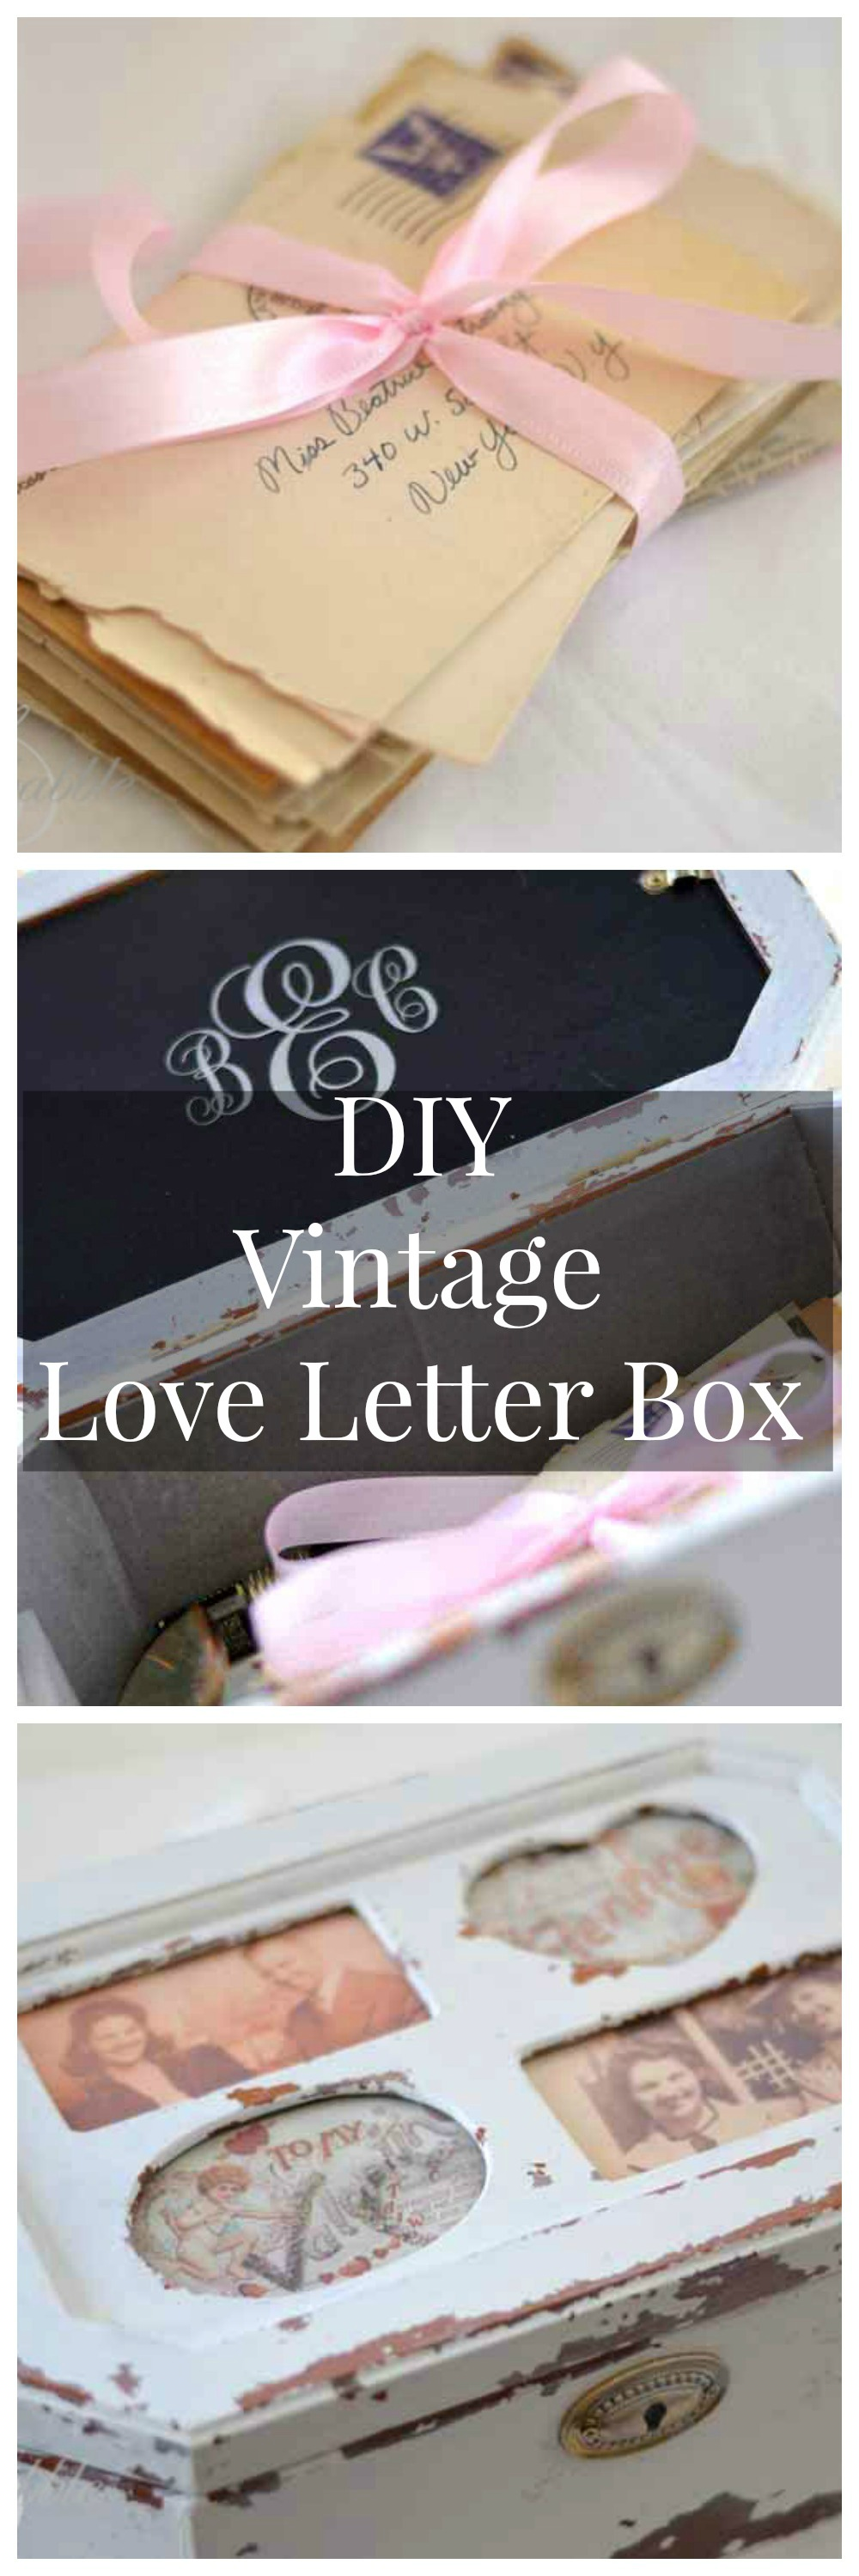 A Vintage Love Letter Box is easy to make using an old, unused jewelry box